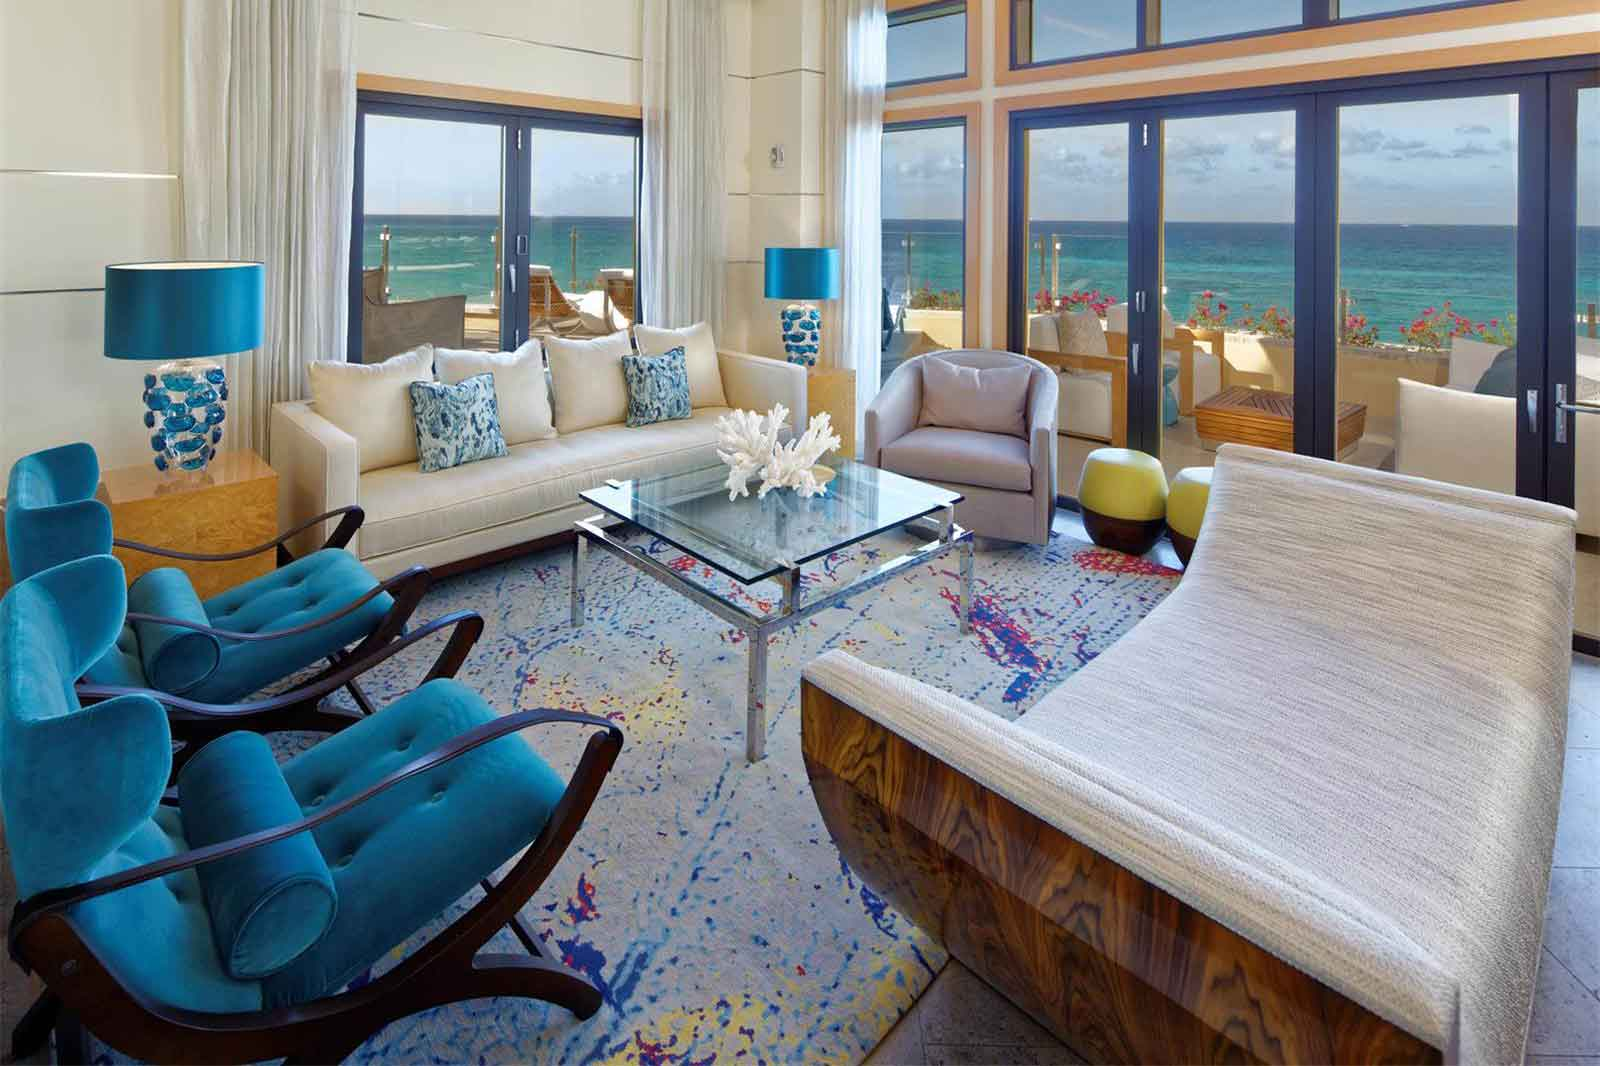 A luxury penthouse atop The Ritz-Carlton Grand Cayman, 700 Seven South's views are unrivaled in the Caribbean: endless vistas of sugar-white sands and crystalline turquoise waters.